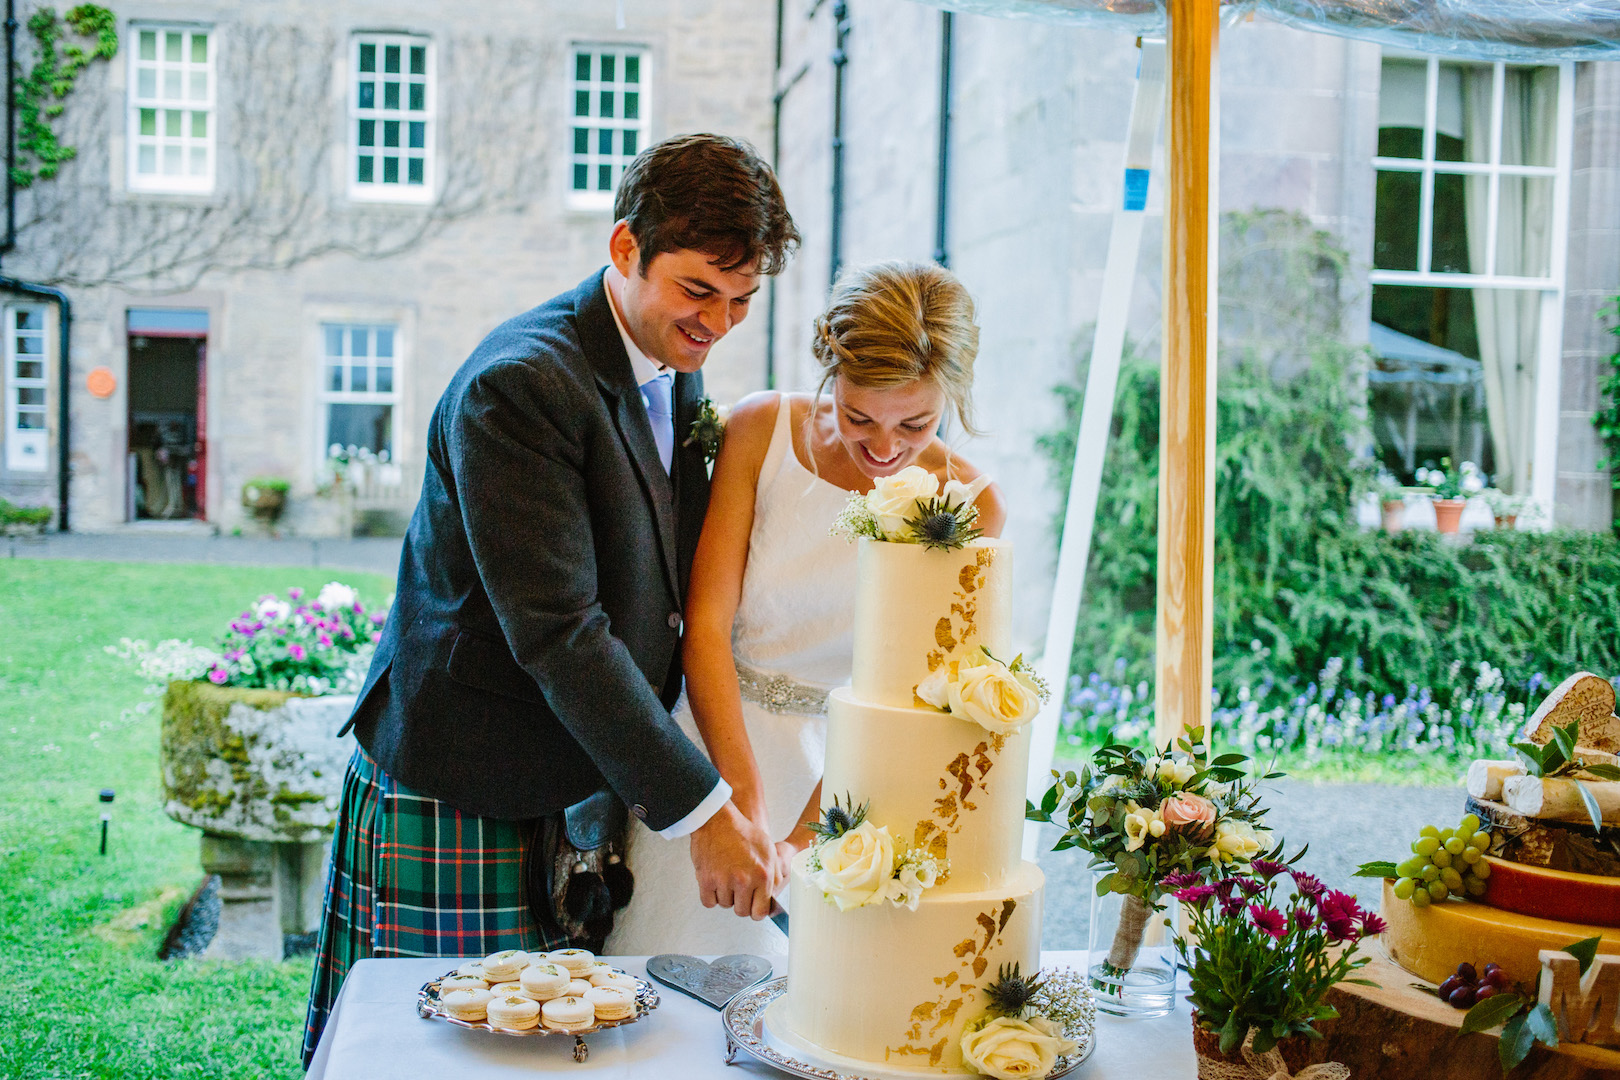 Alice & Alex's PapaKåta Sperry Wedding at Dunsinnan House, Scotland - Cutting the Cake